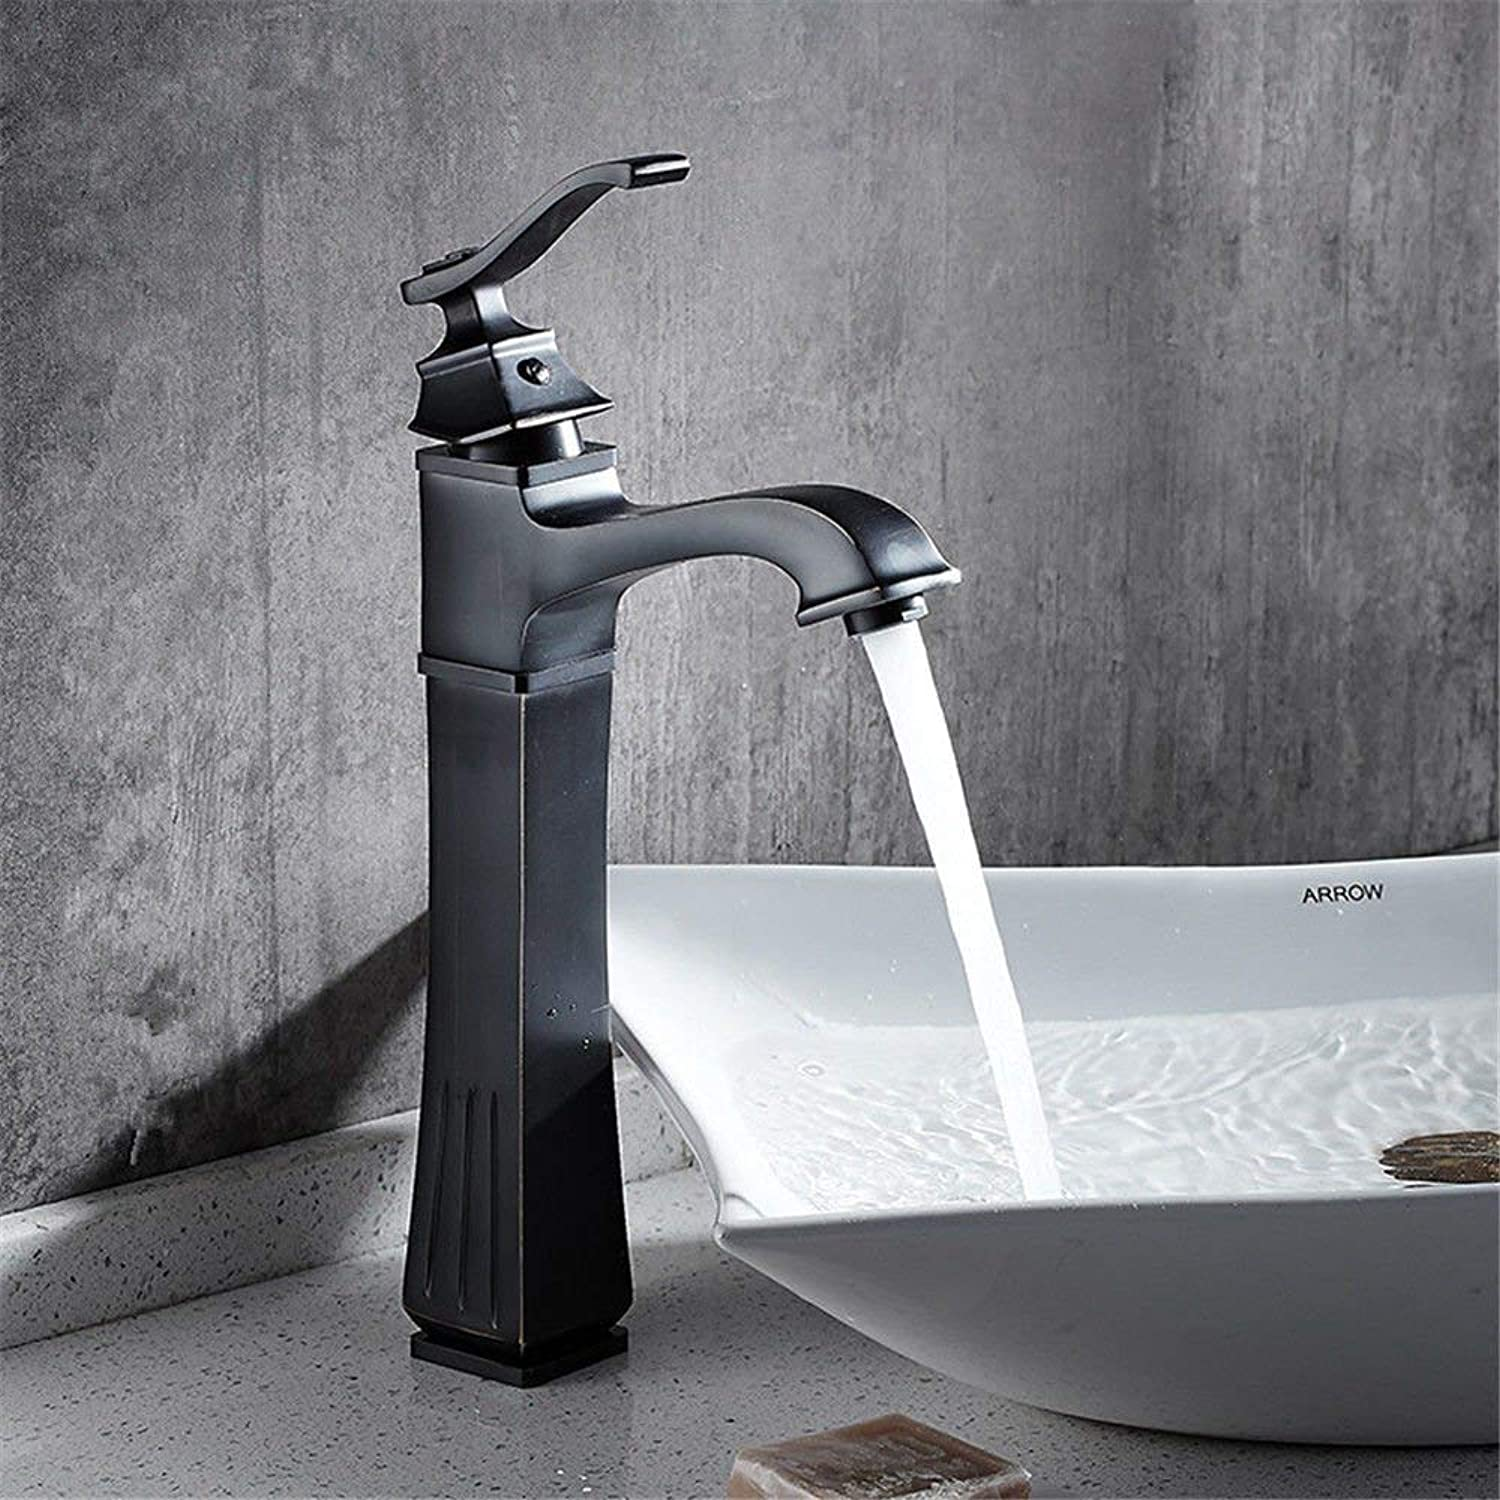 FERZA home Sink Mixer Tap Bathroom Kitchen Basin Water Tap Leakproof Save Water Basin-Copper Black Single Hole Retro Hot & Cold Water Square, Minimalist B (color   A)